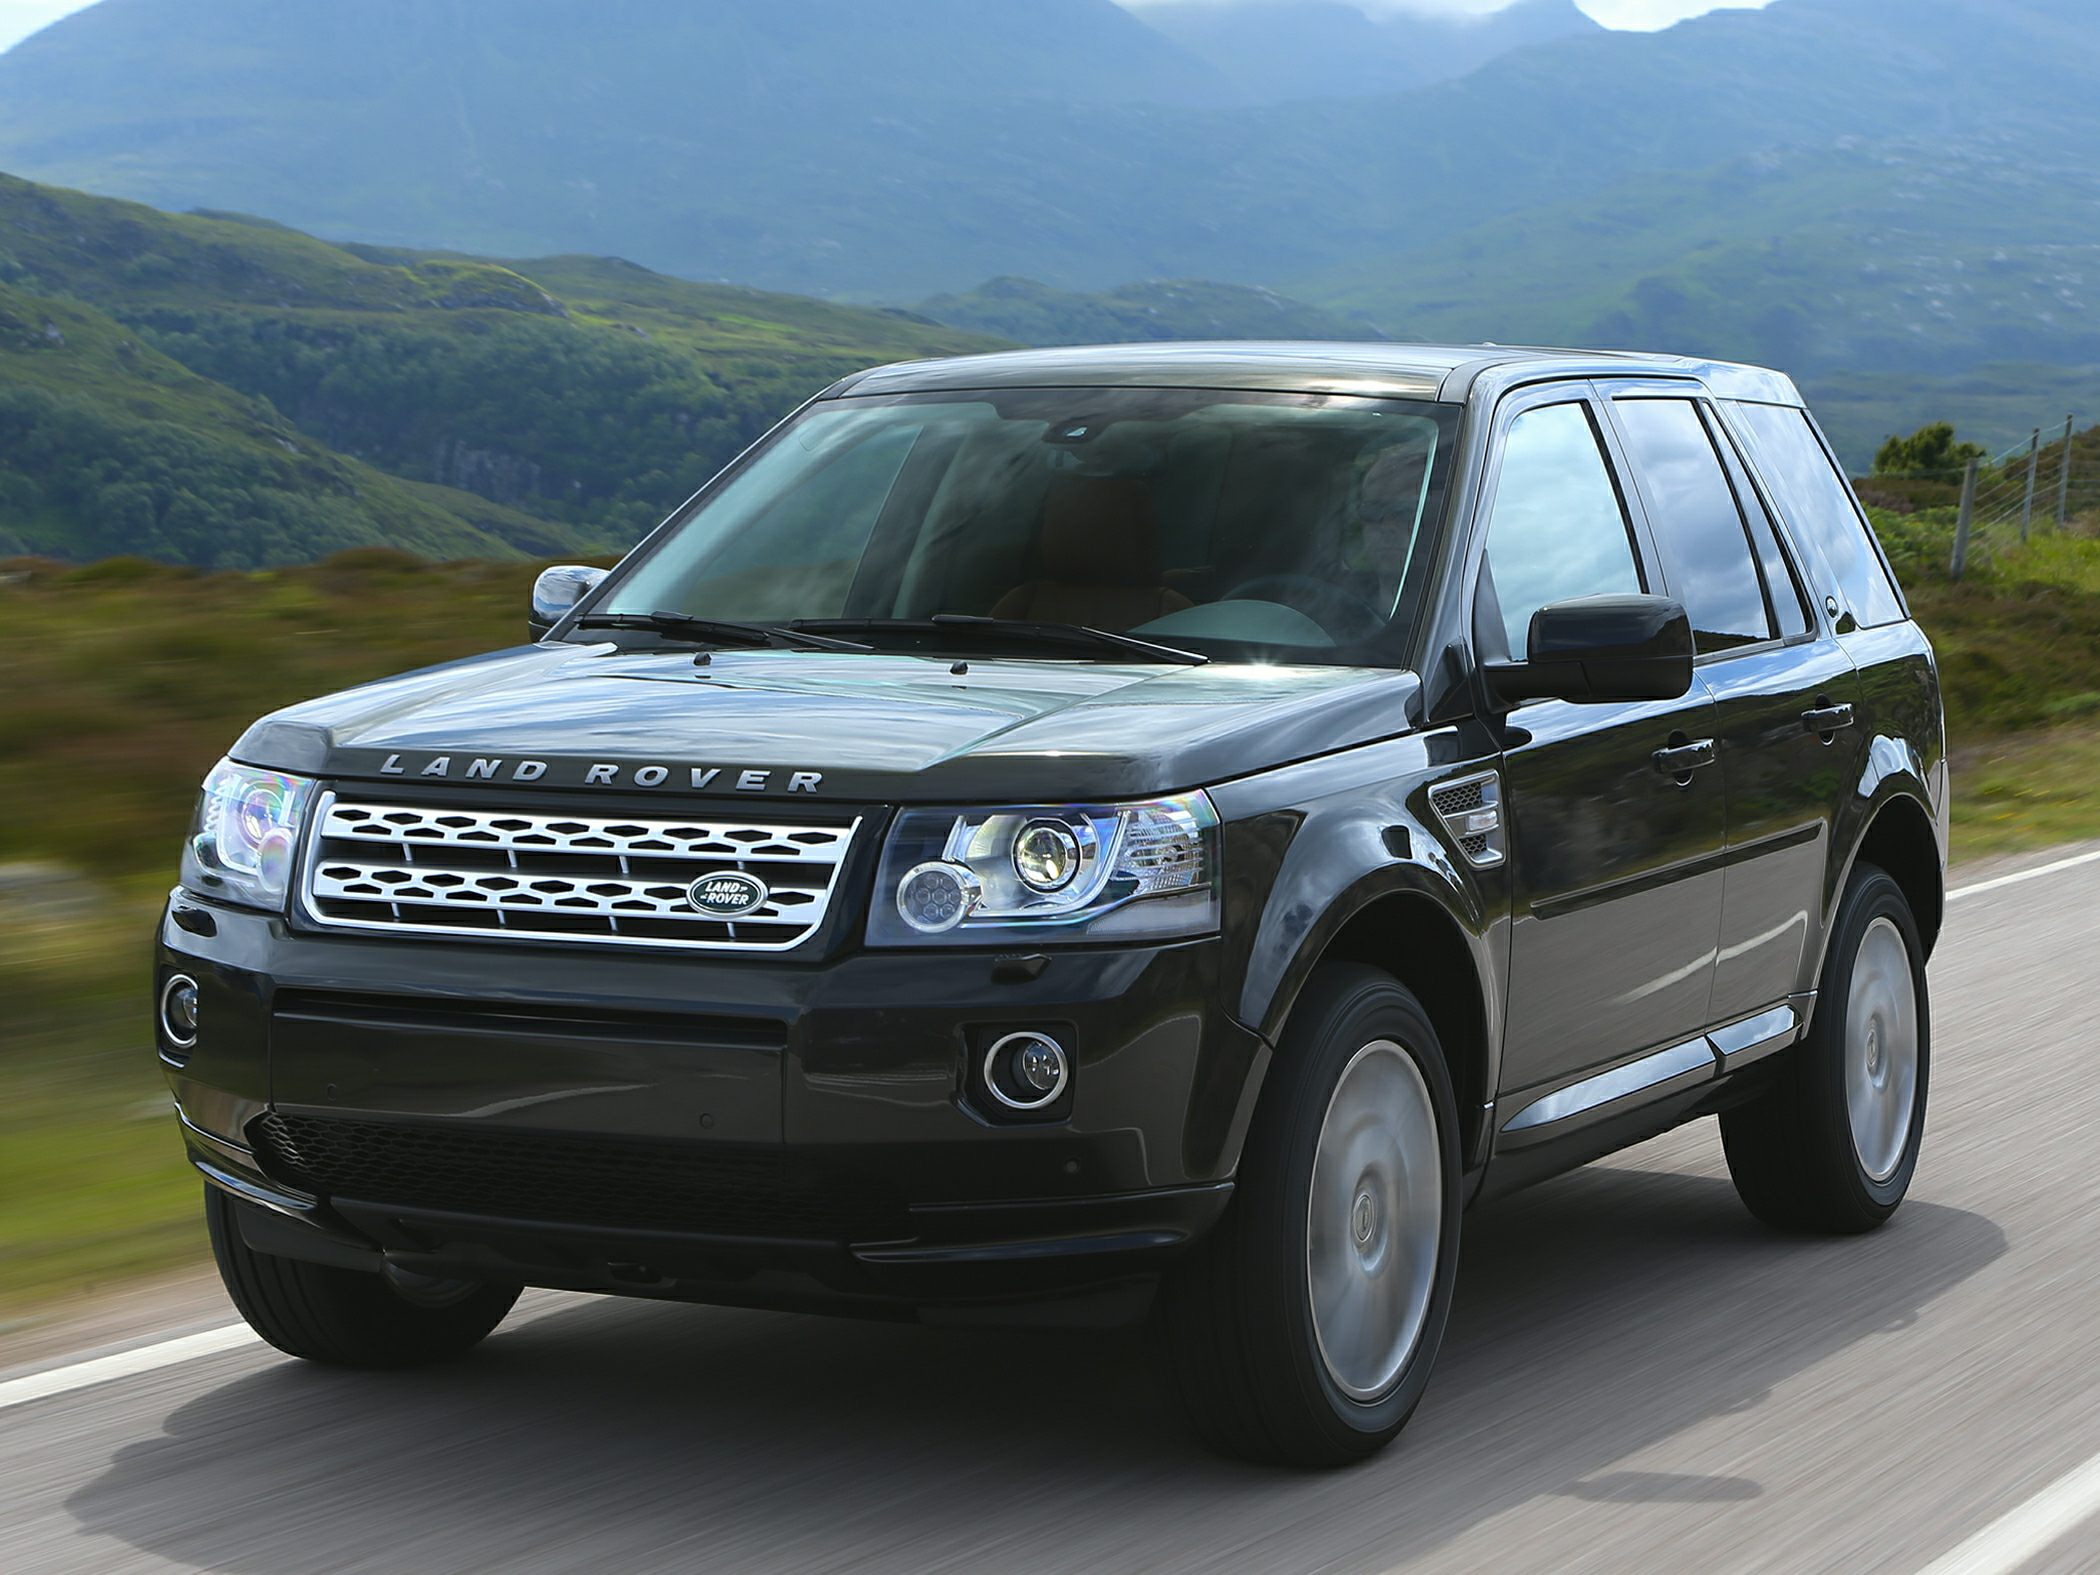 landrover se owned sale get cars wm buy rover price now fullerton in for sold land pre approved detail